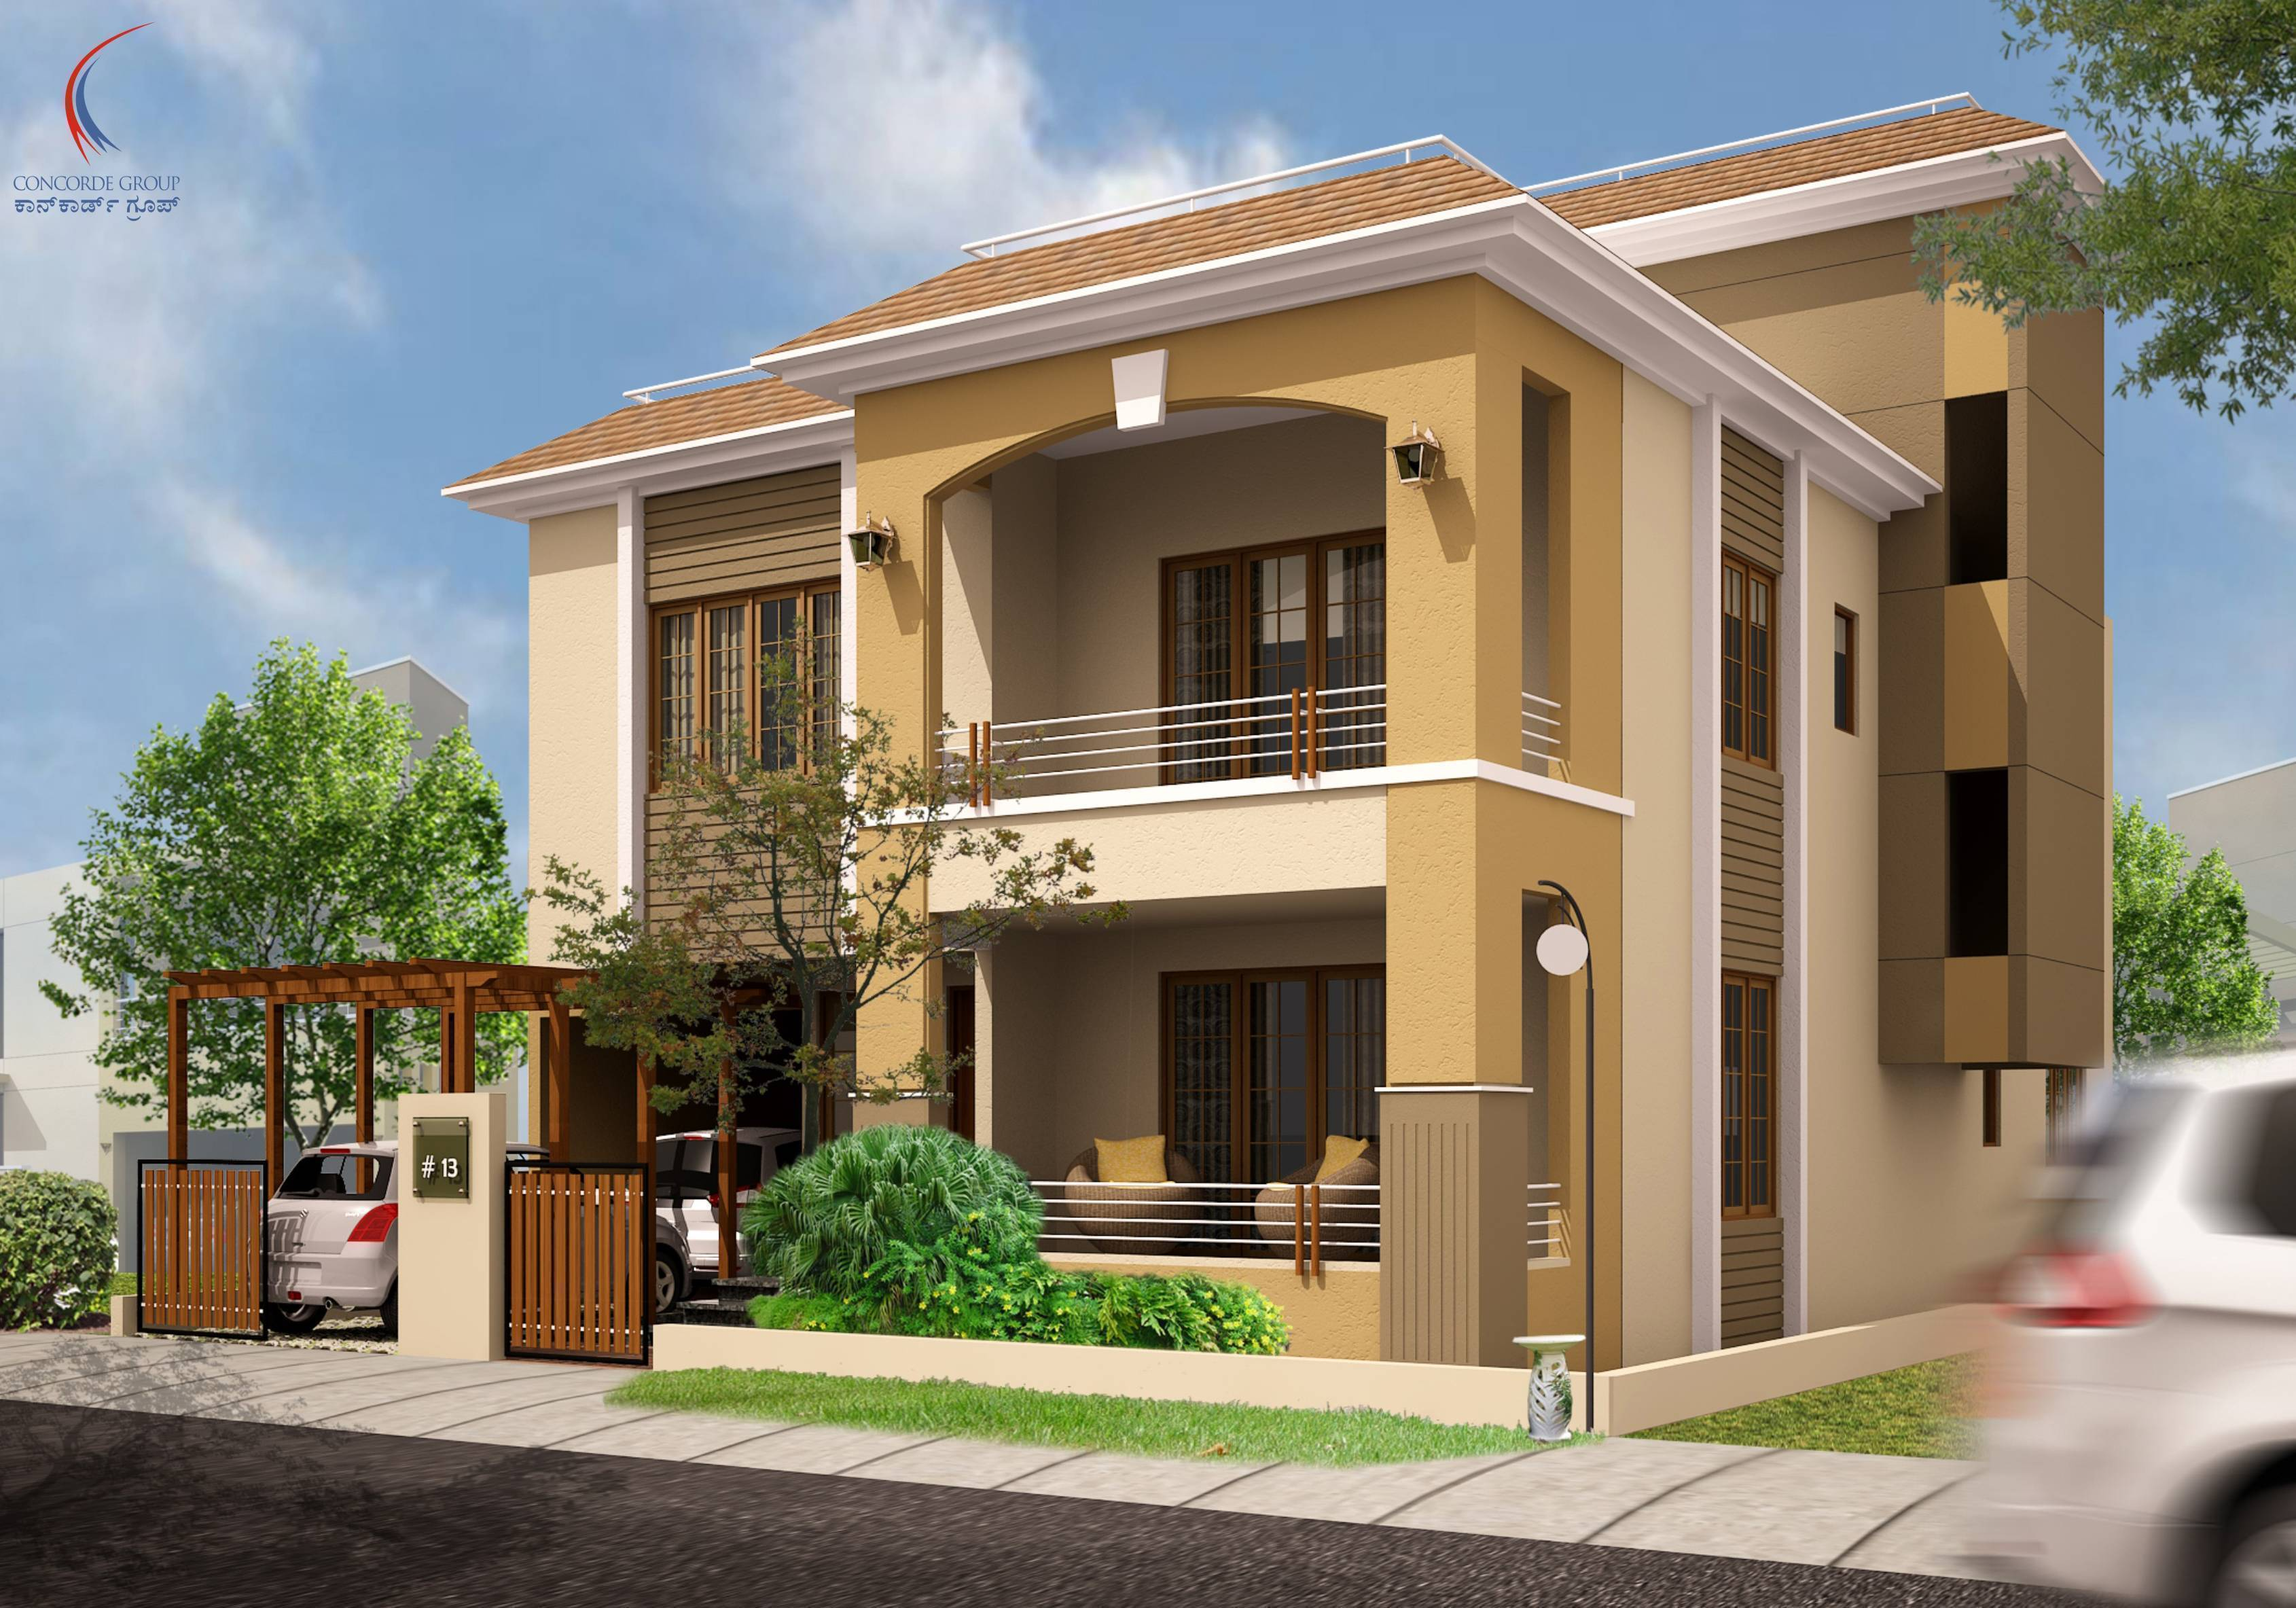 House for sale bangalore karnataka india houses in for Different types of house plans